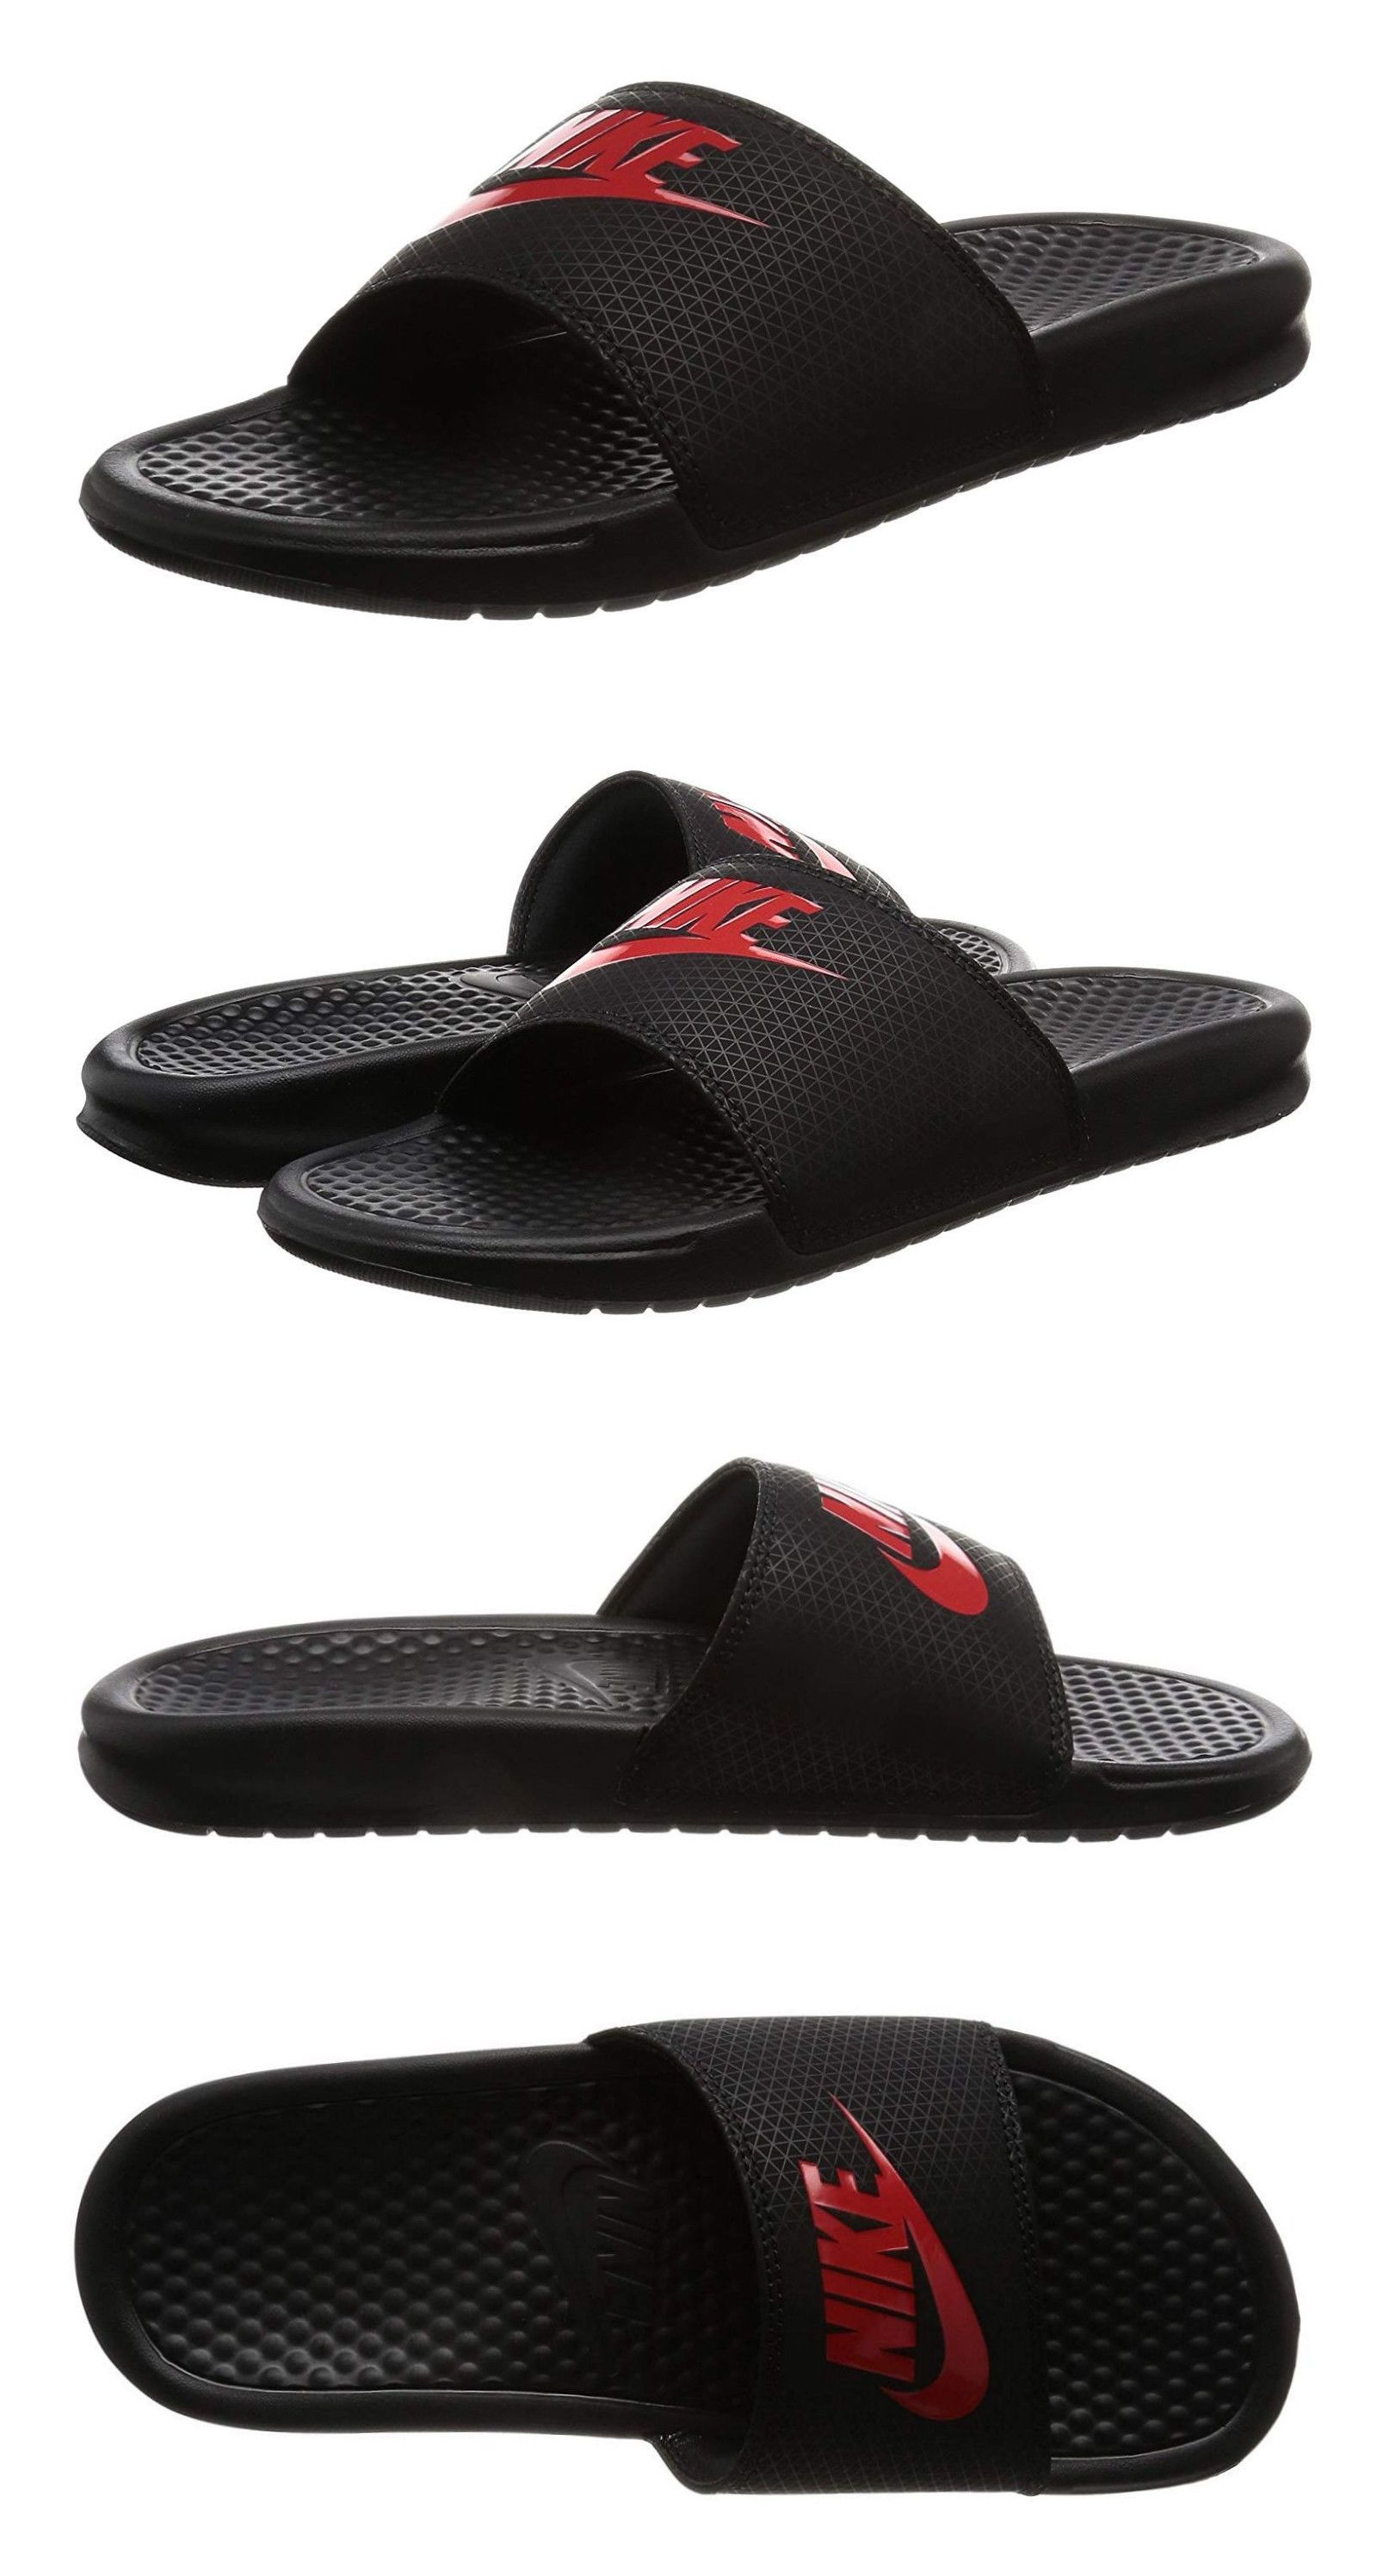 the best attitude ee3c0 ded50 Sandals 11504  Nike Benassi Jdi Black, Challenge Red Slides Sports Mens  Sandals Item 343880 060 -  BUY IT NOW ONLY   29.95 on  eBay  sandals   benassi ...